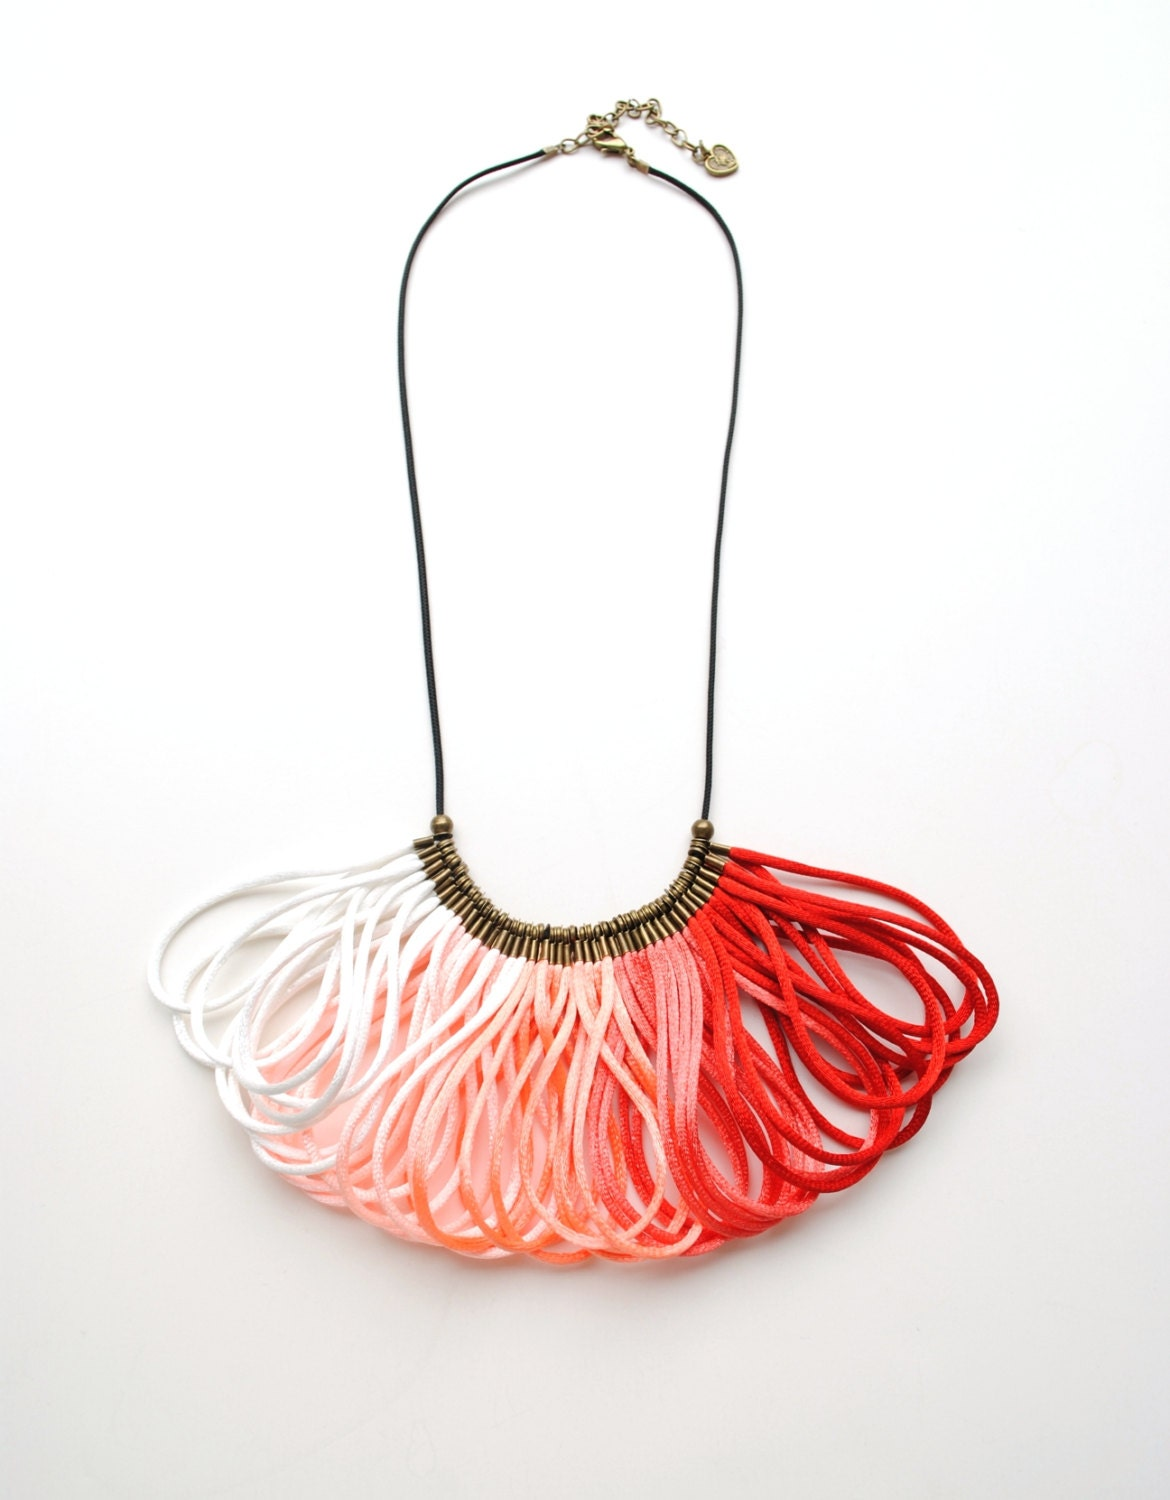 Ombre Red White Coral Peach Salmon Satin Cord, Rope Jewelry, Statement Necklace, Bib, Elegant, Silk, Gift for Her - elfinadesign